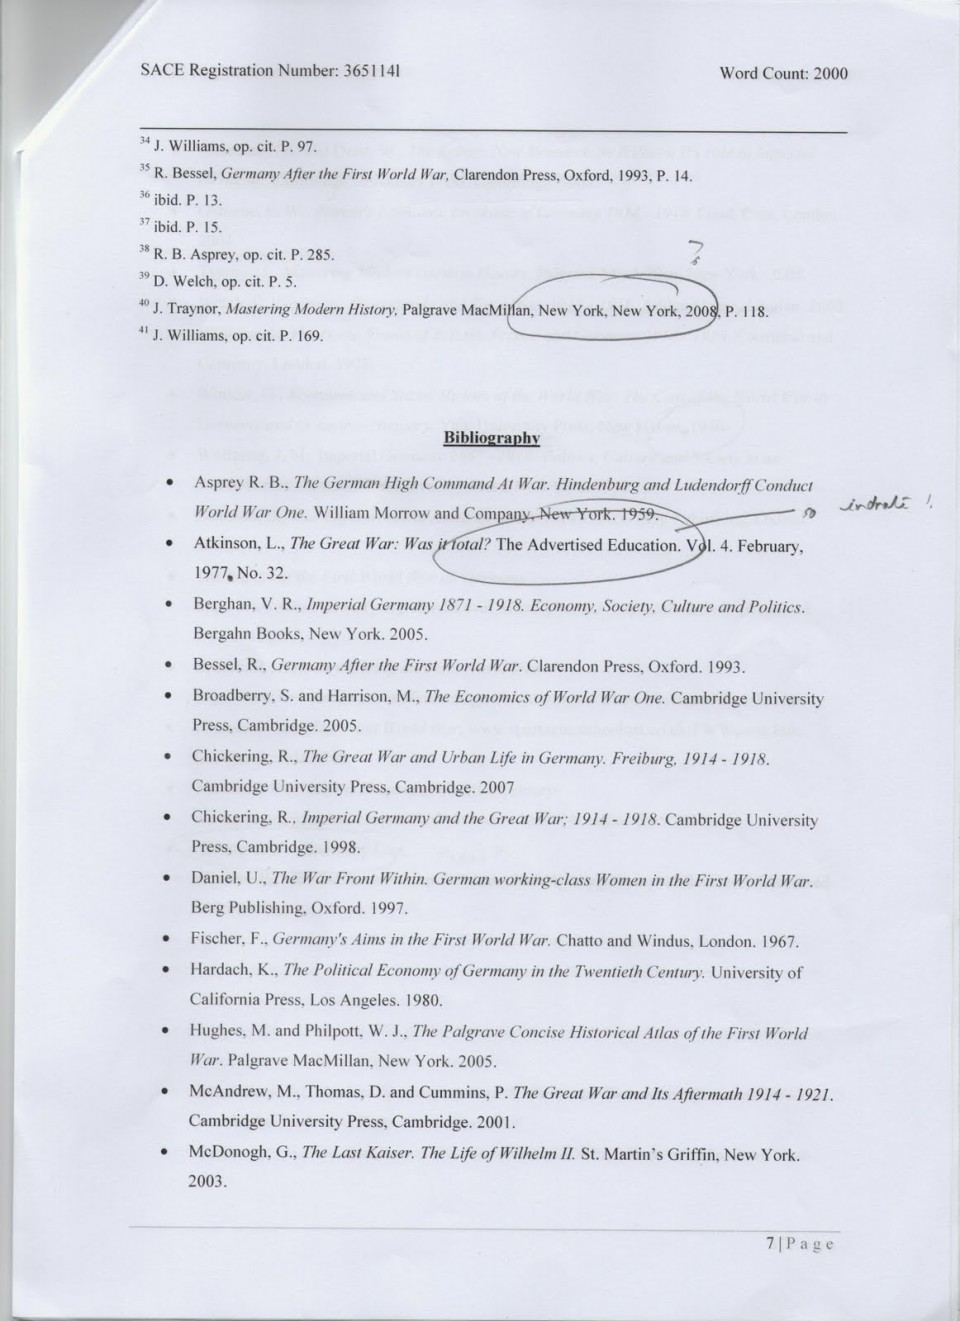 005 Endnotes2bbibliography1 Why Uchicago Essay Fearsome College Confidential Reddit Length 960